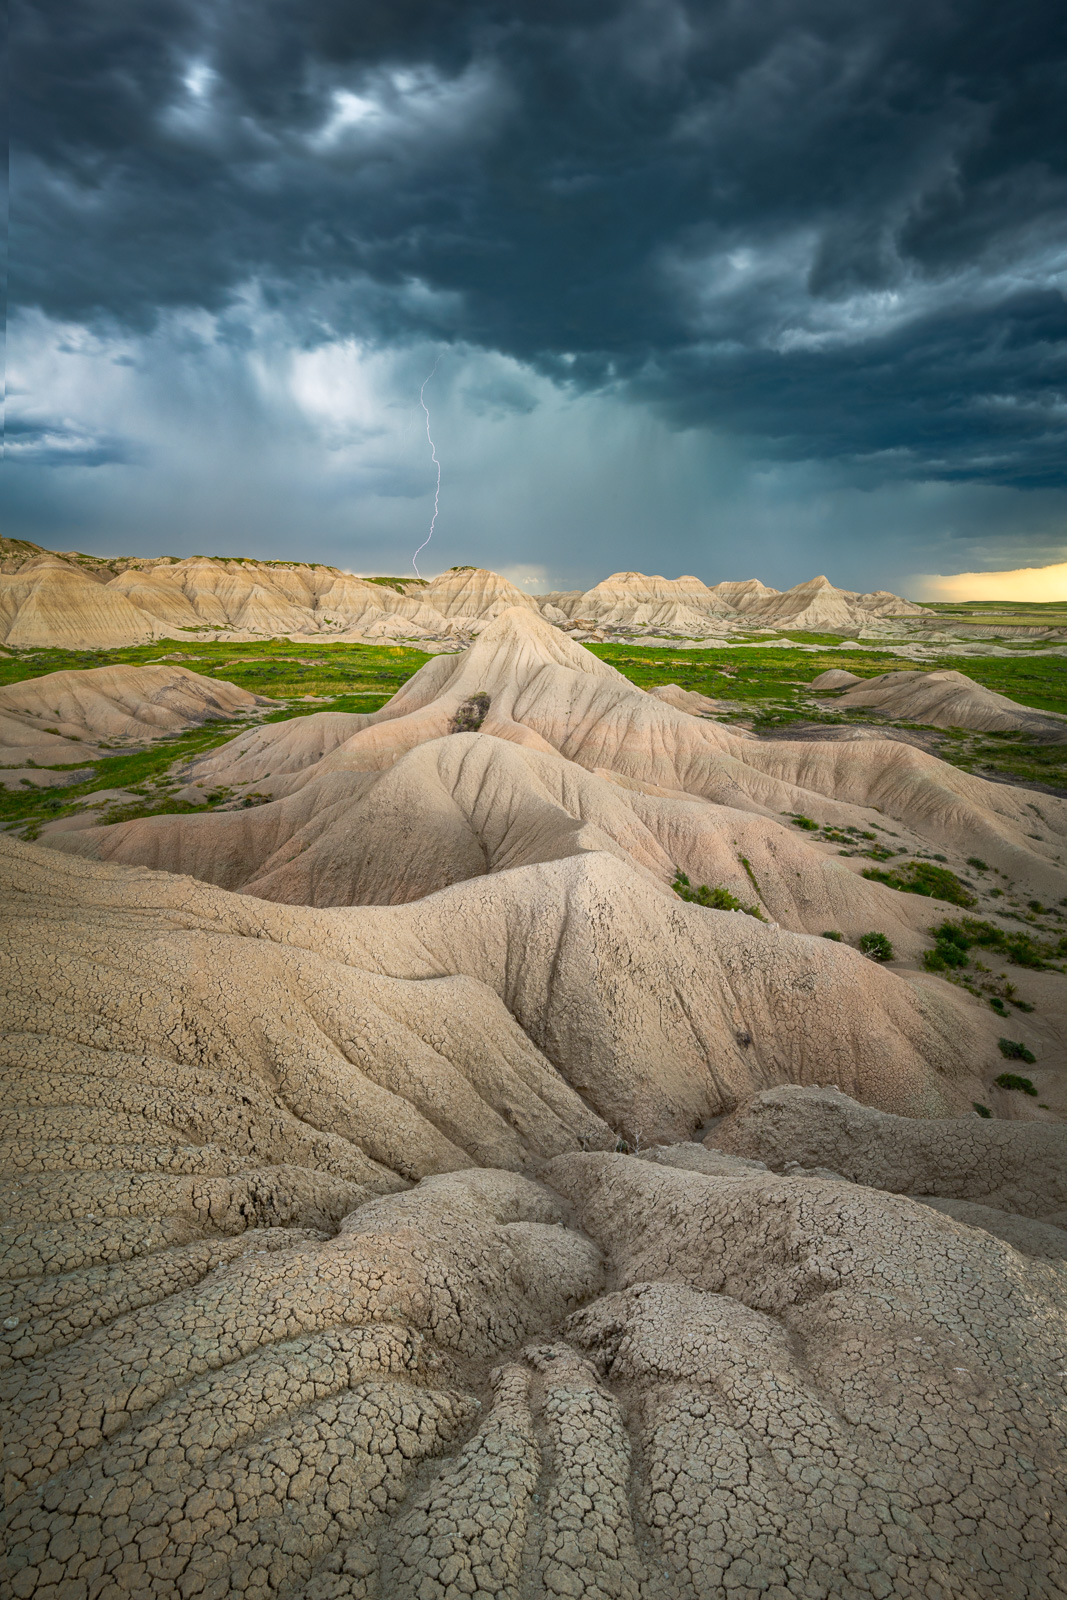 Lightning and a massive super cell thunderstorm captured from tyhe remote badlands of Toadstool Geologic Preserve in western...